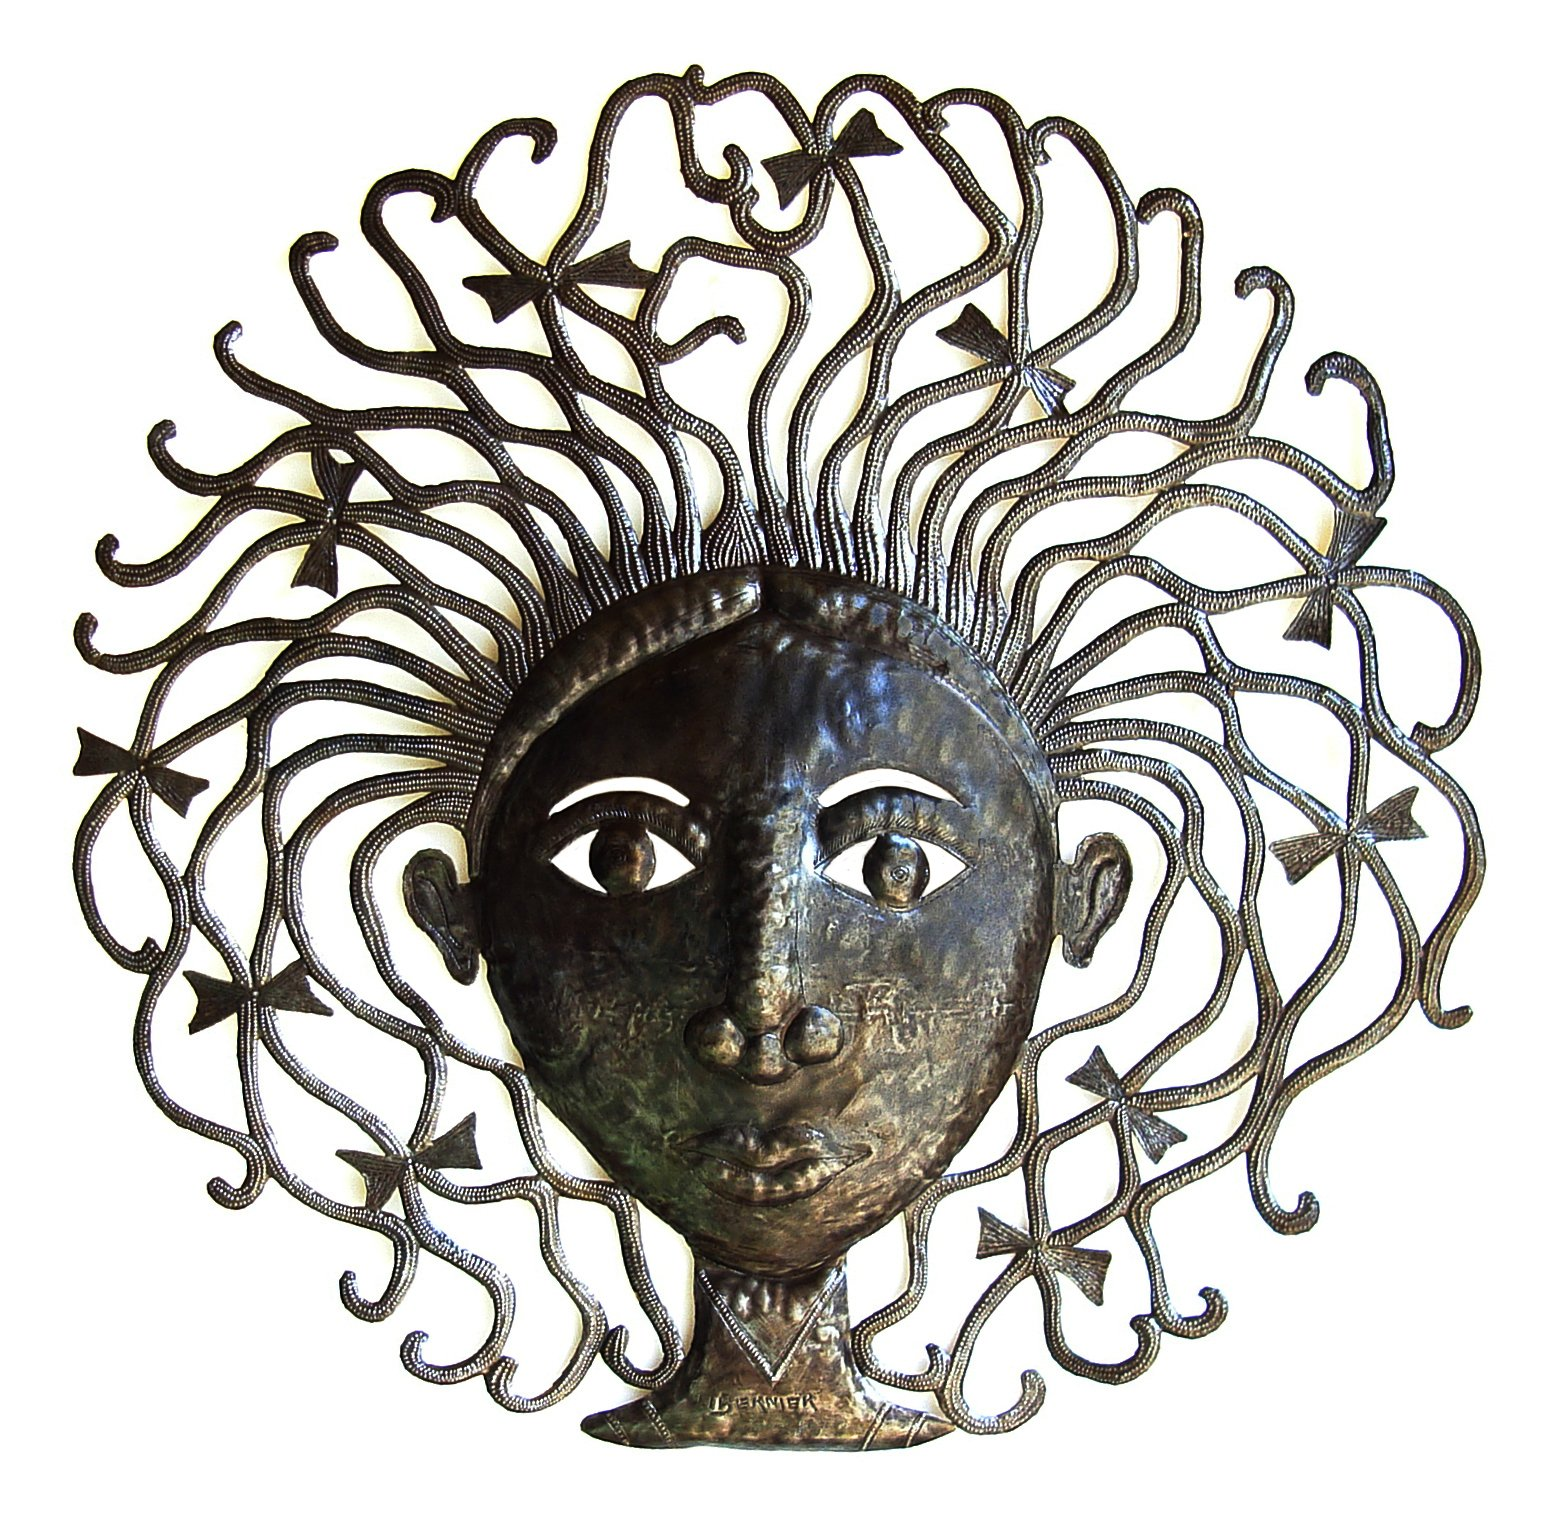 Le Primitif Galleries Haitian Recycled Steel Oil Drum Outdoor Decor, 33 by 33-Inch, Girl's Head